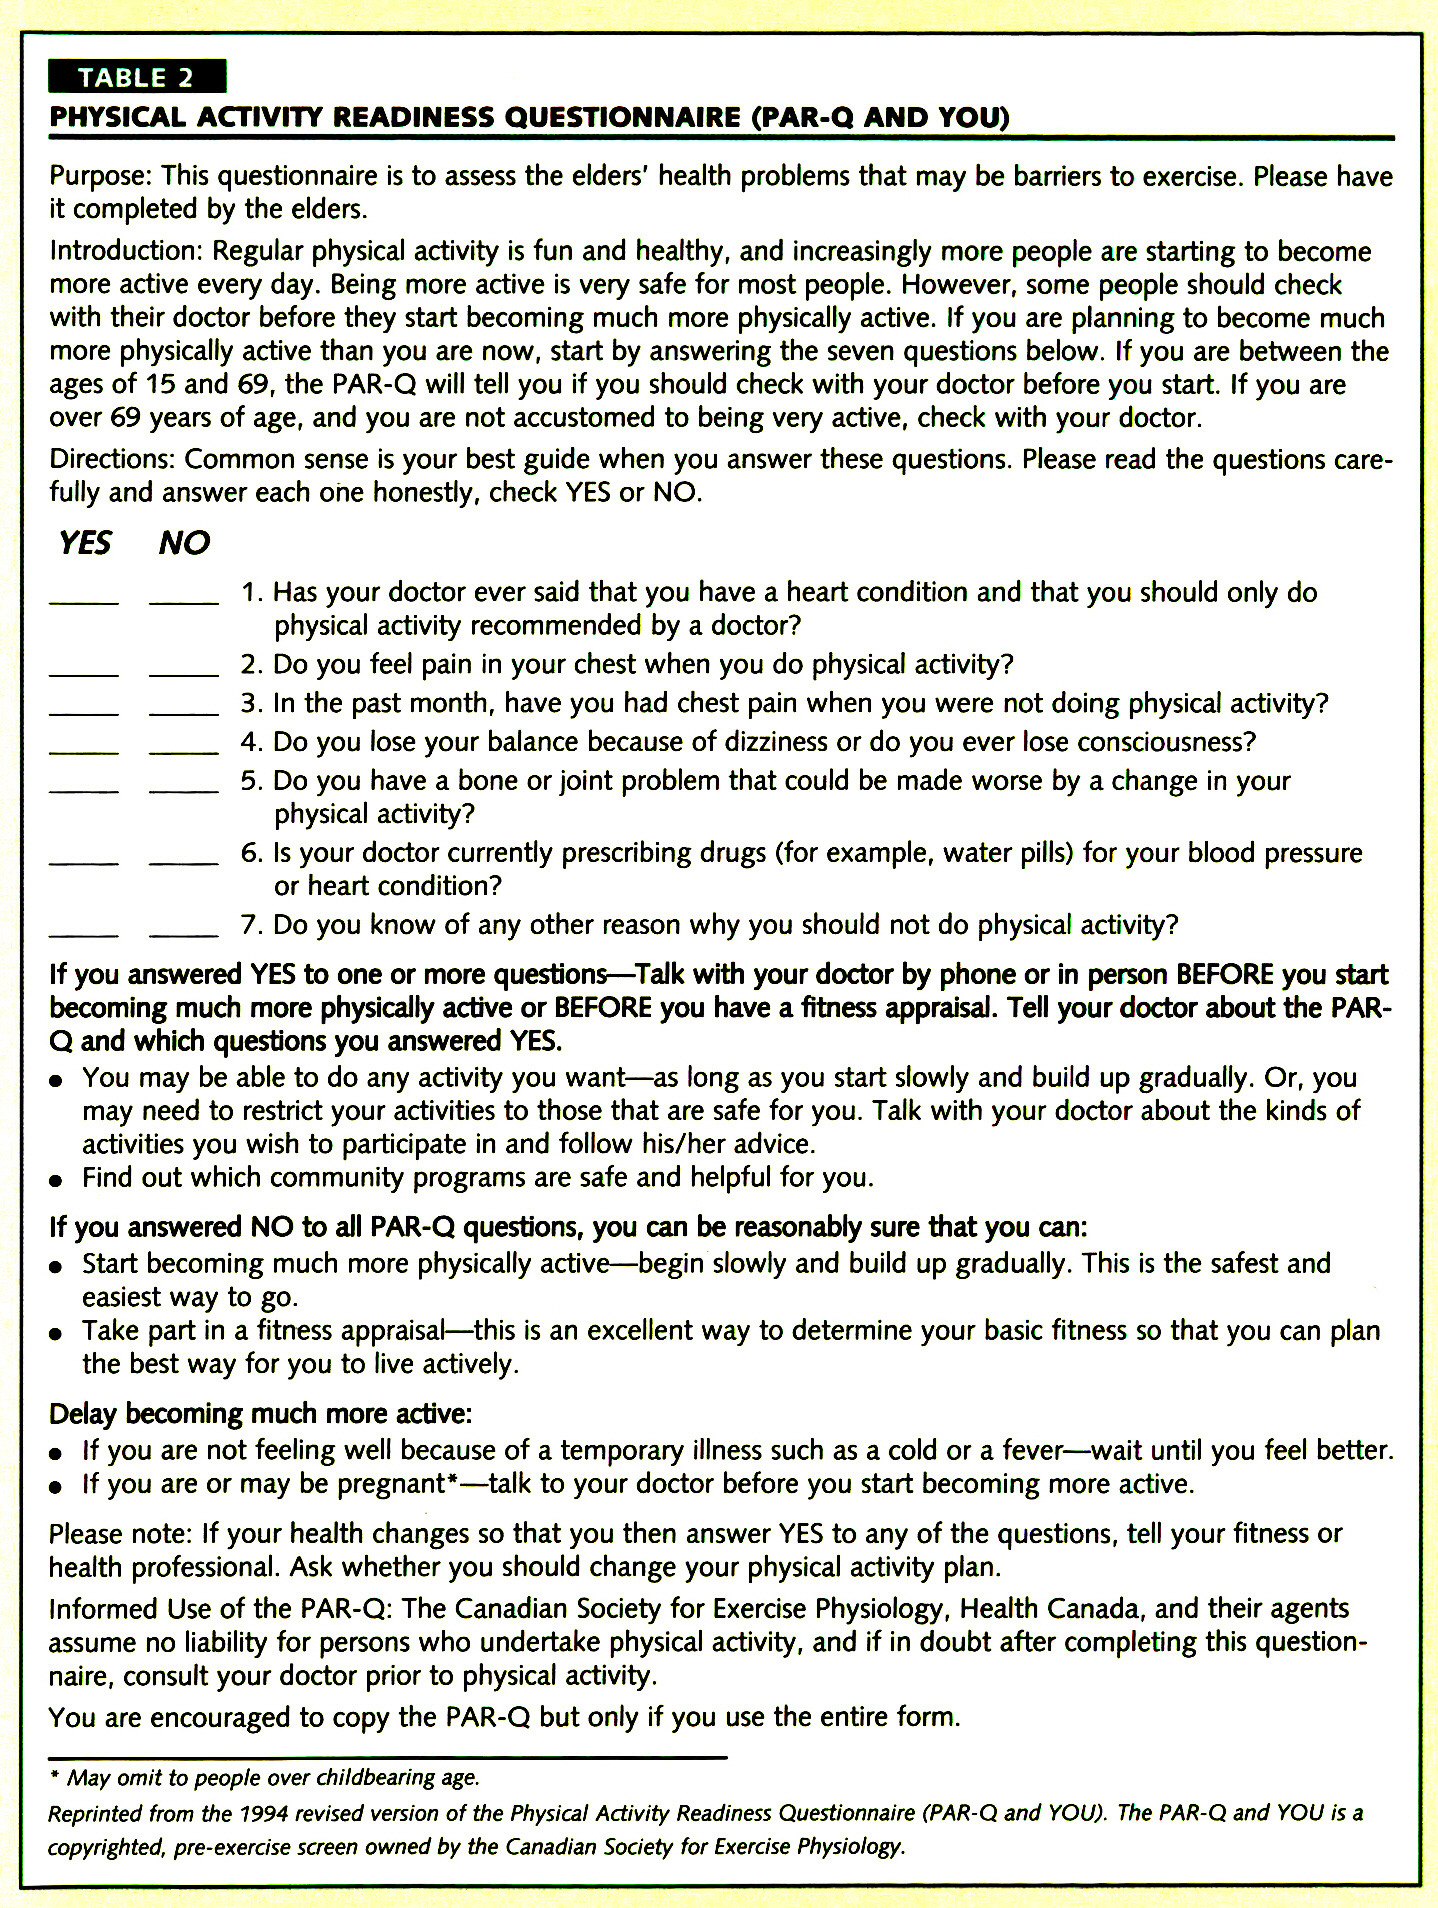 phy 2001 questionnaire 3 this is the final short last 7 days self-administered version of ipaq from the 2000 /01 reliability and validity study completed may 2001 international physical activity questionnaire.